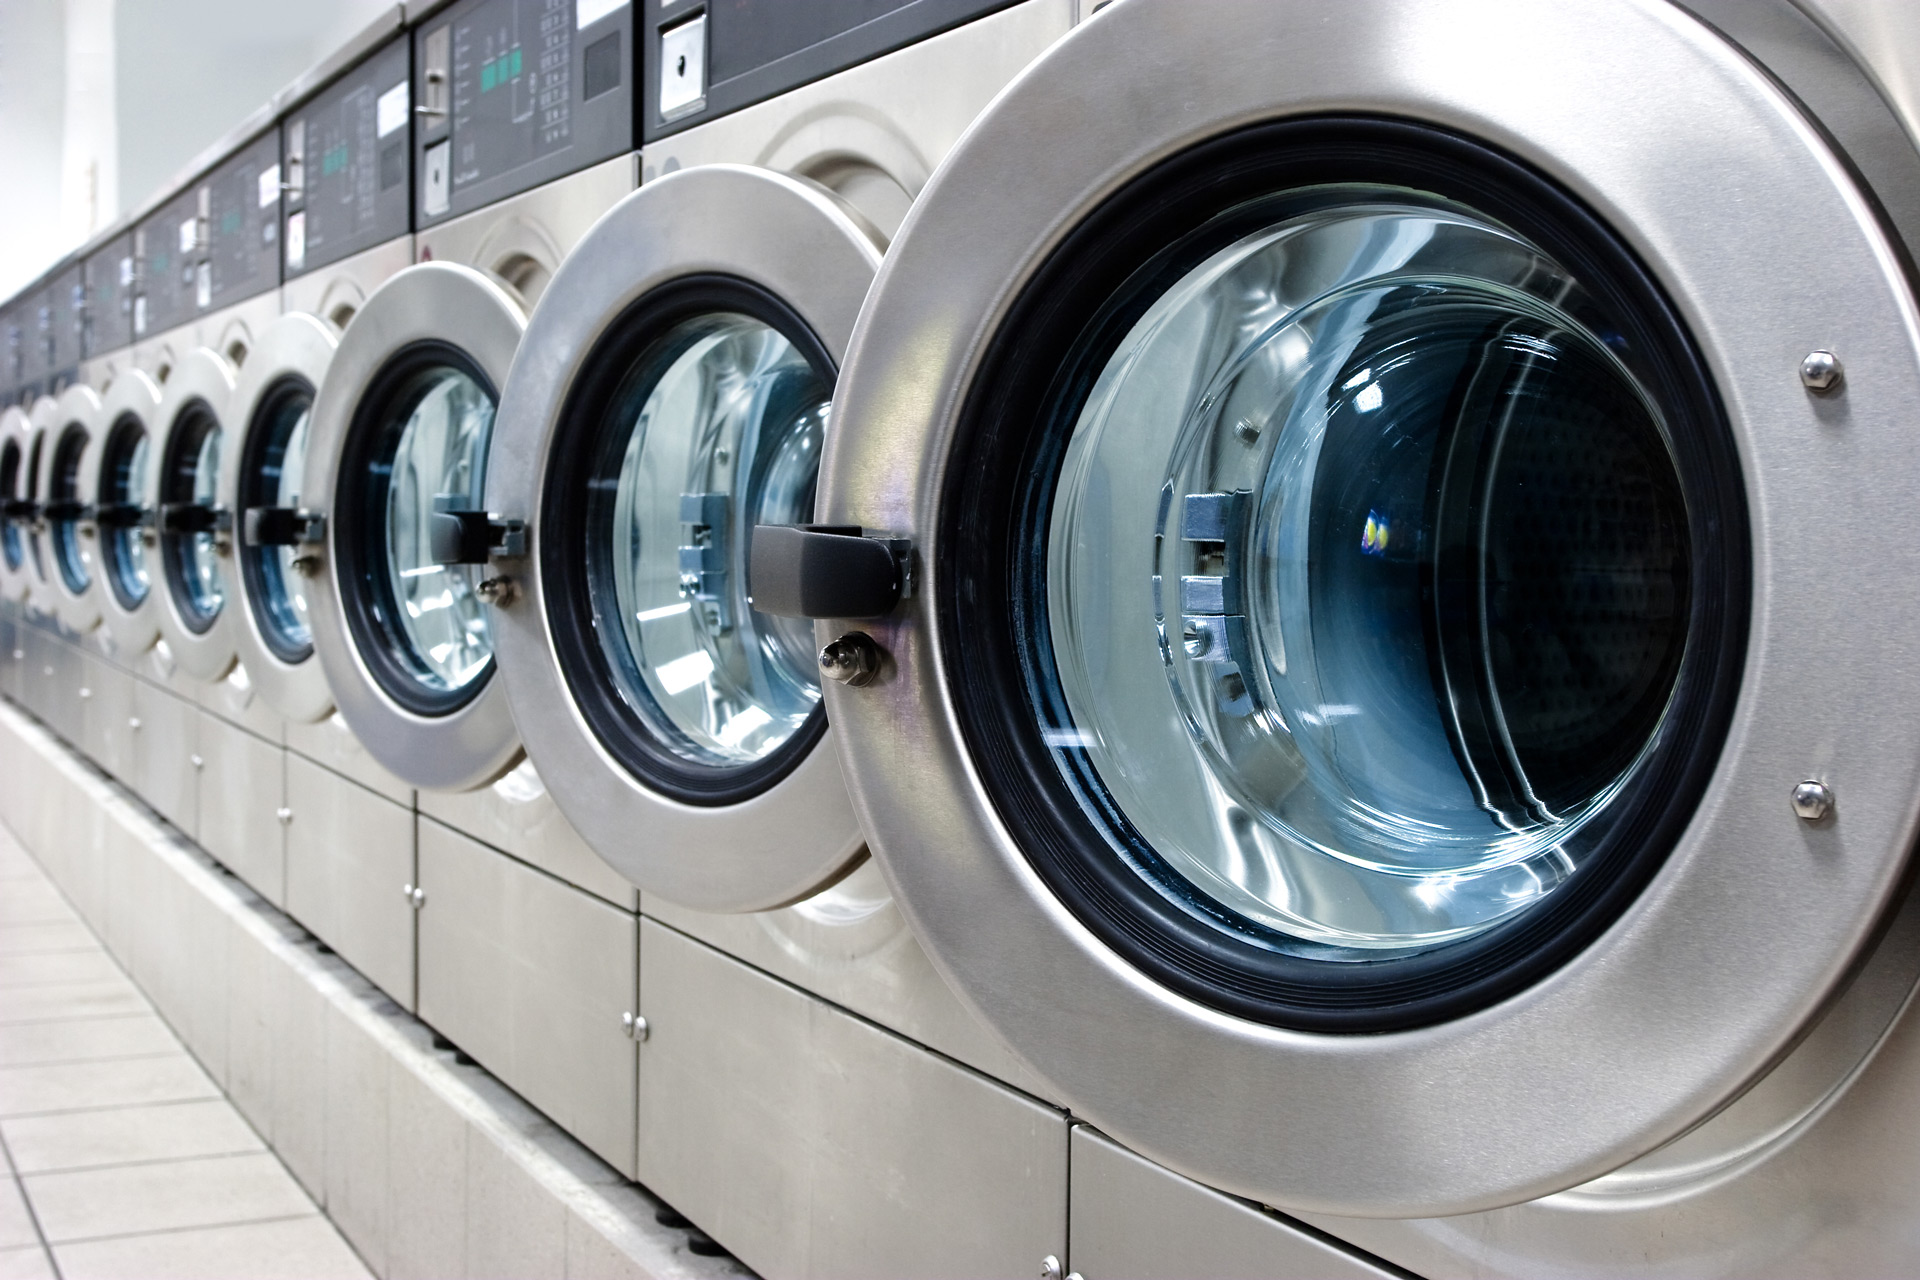 A row of stainless steel washing machines in a laundromat